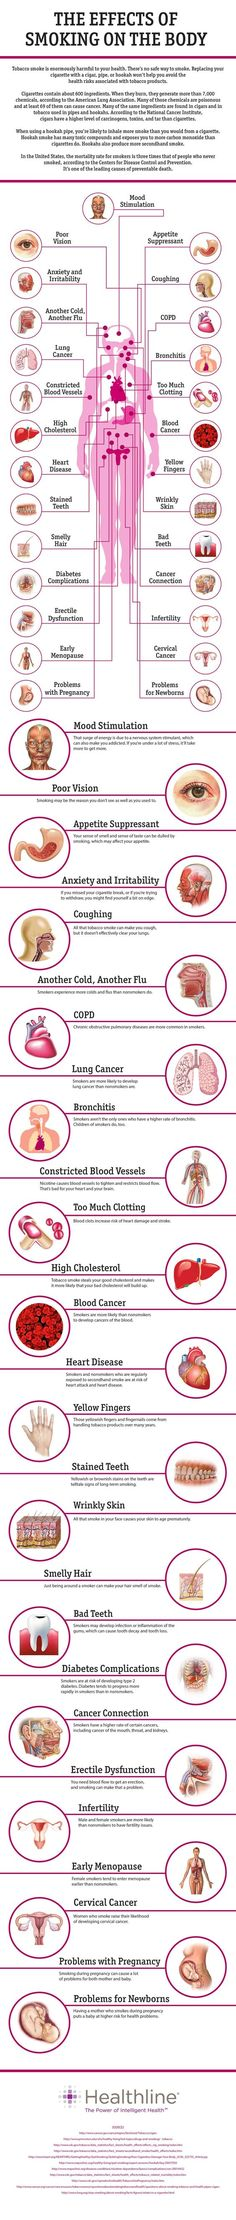 Ways Smoking Affects The Body.